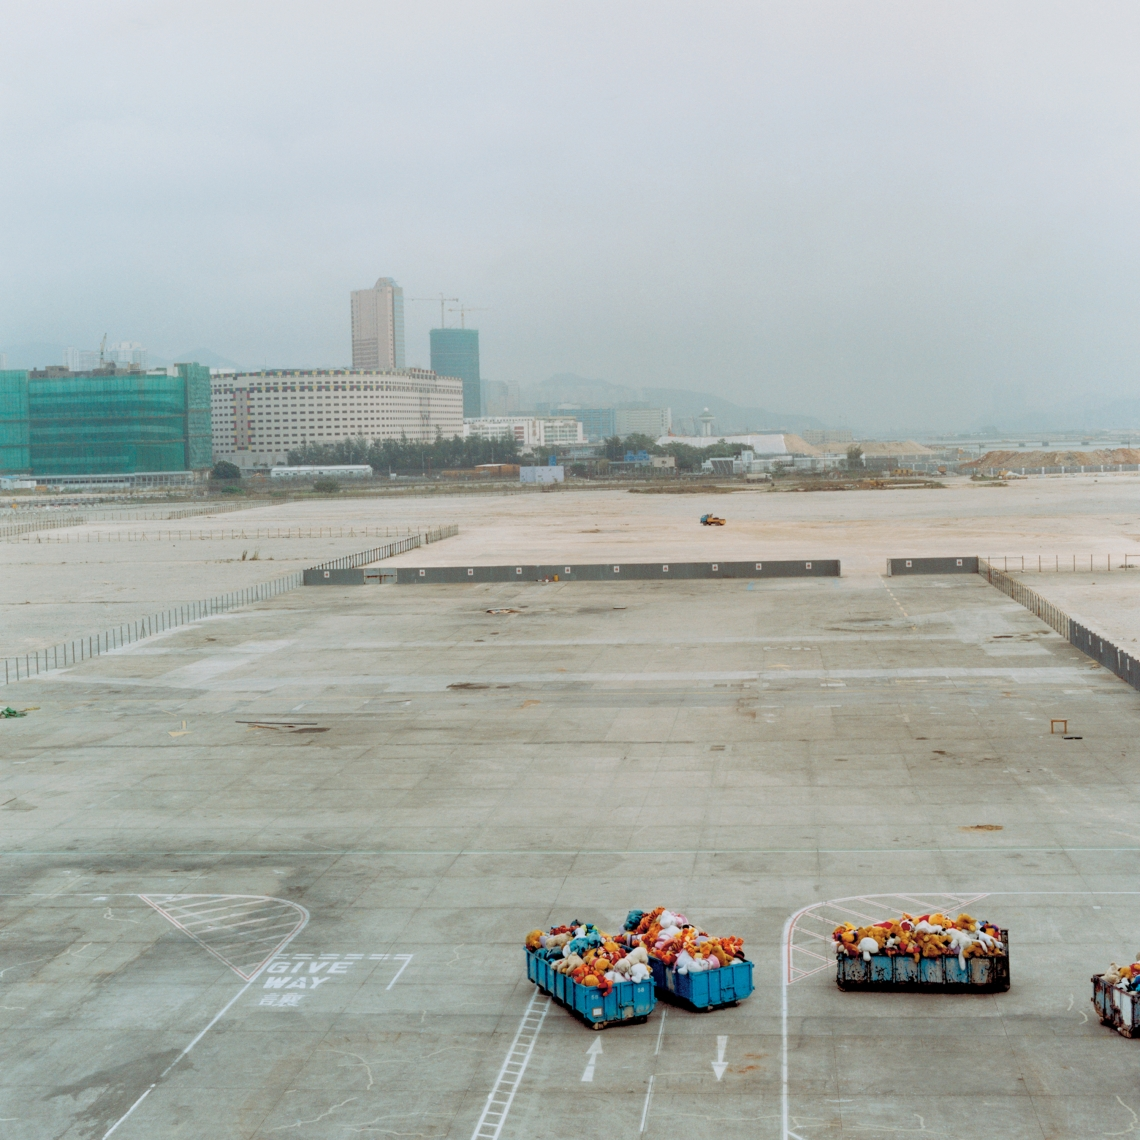 Disused airport, Kai Tak, Hong Kong